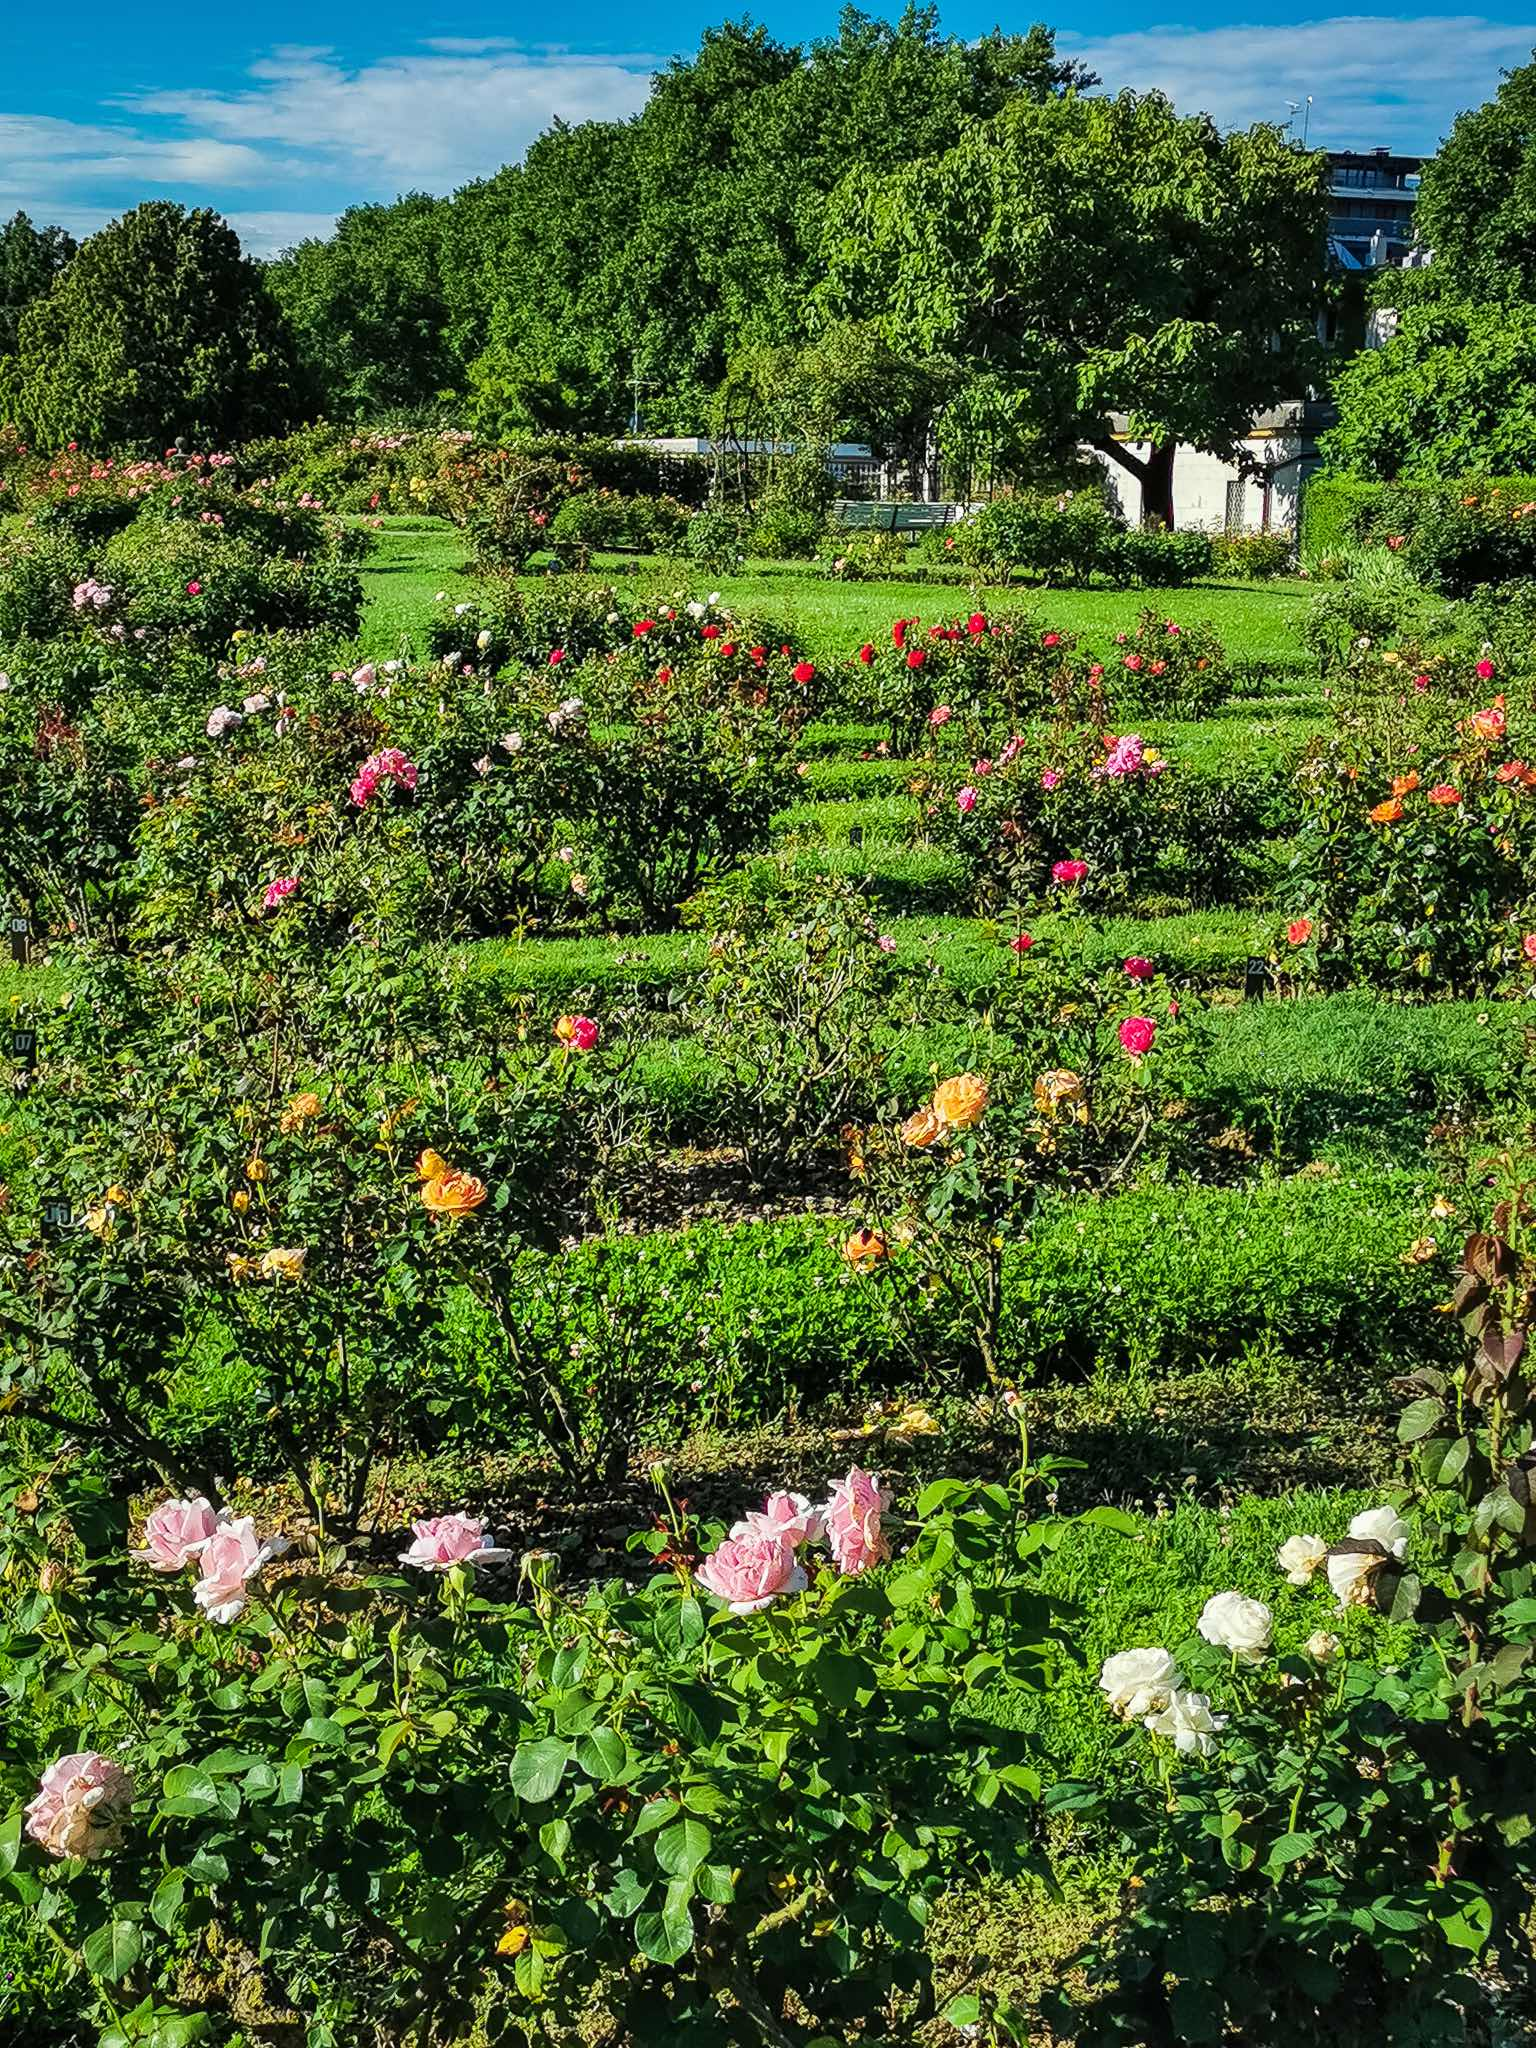 The beautiful rose garden at the Royal Villa in Monza